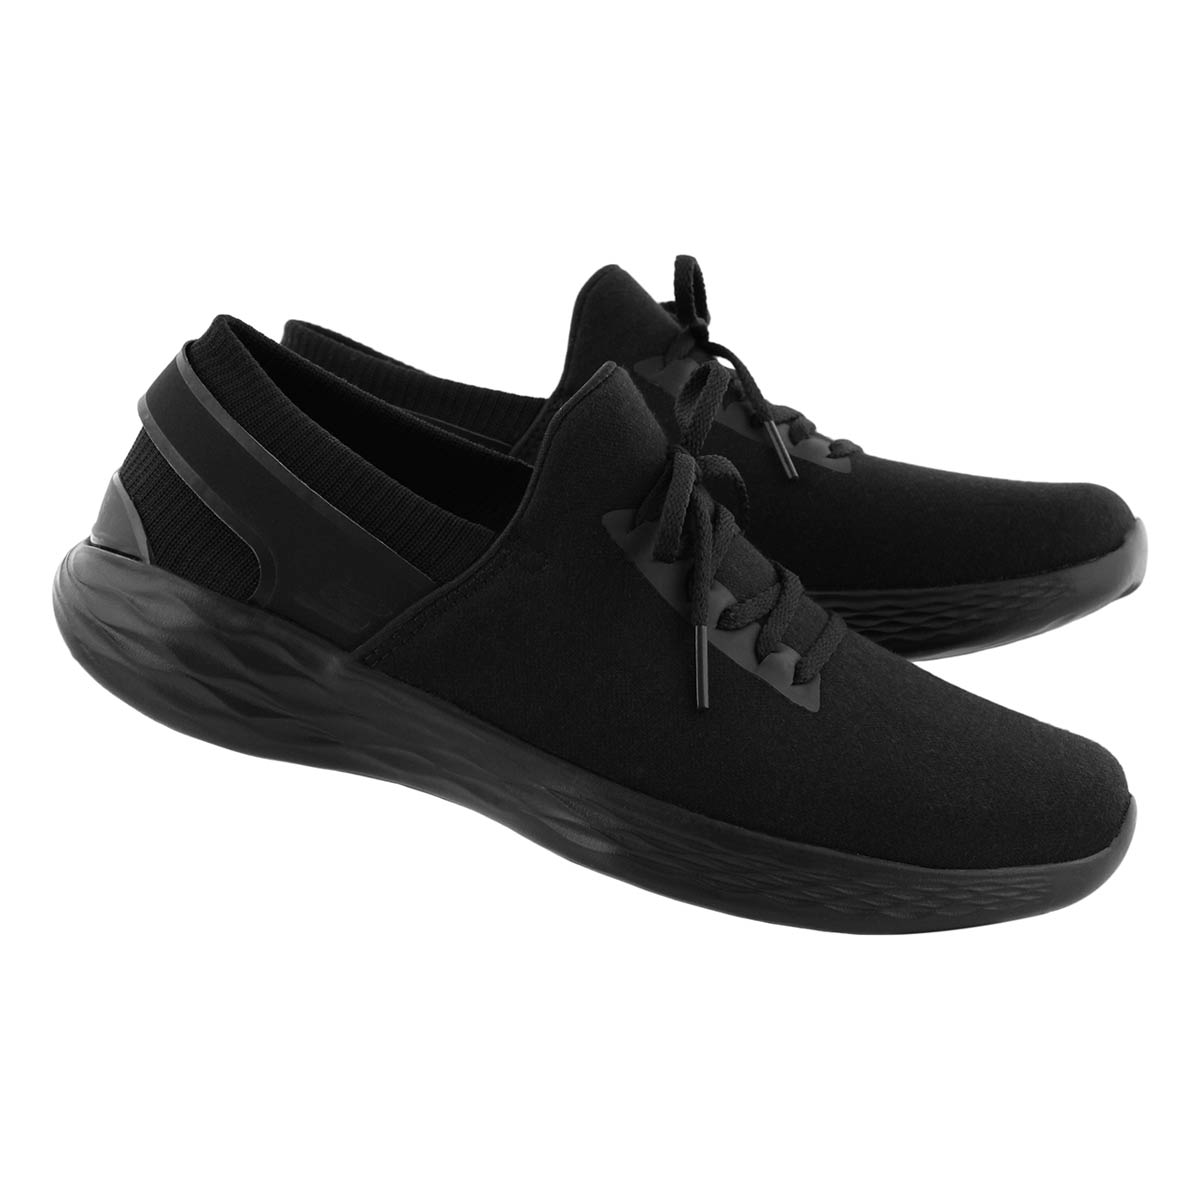 Lds YOU Ambiance blk lace slip on snkr